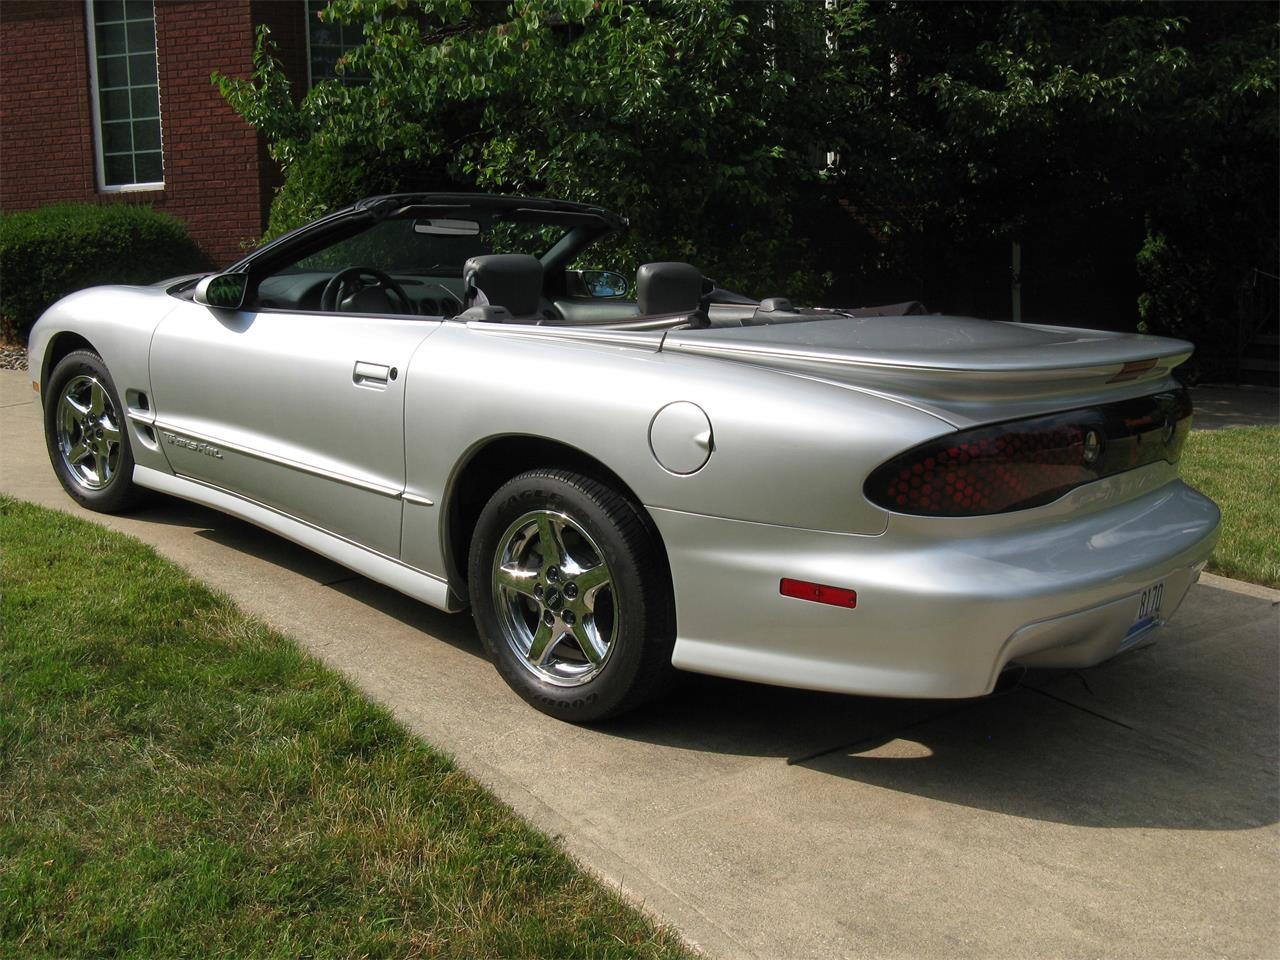 1998 Pontiac Firebird Trans Am (CC-1234267) for sale in Shaker Heights, Ohio